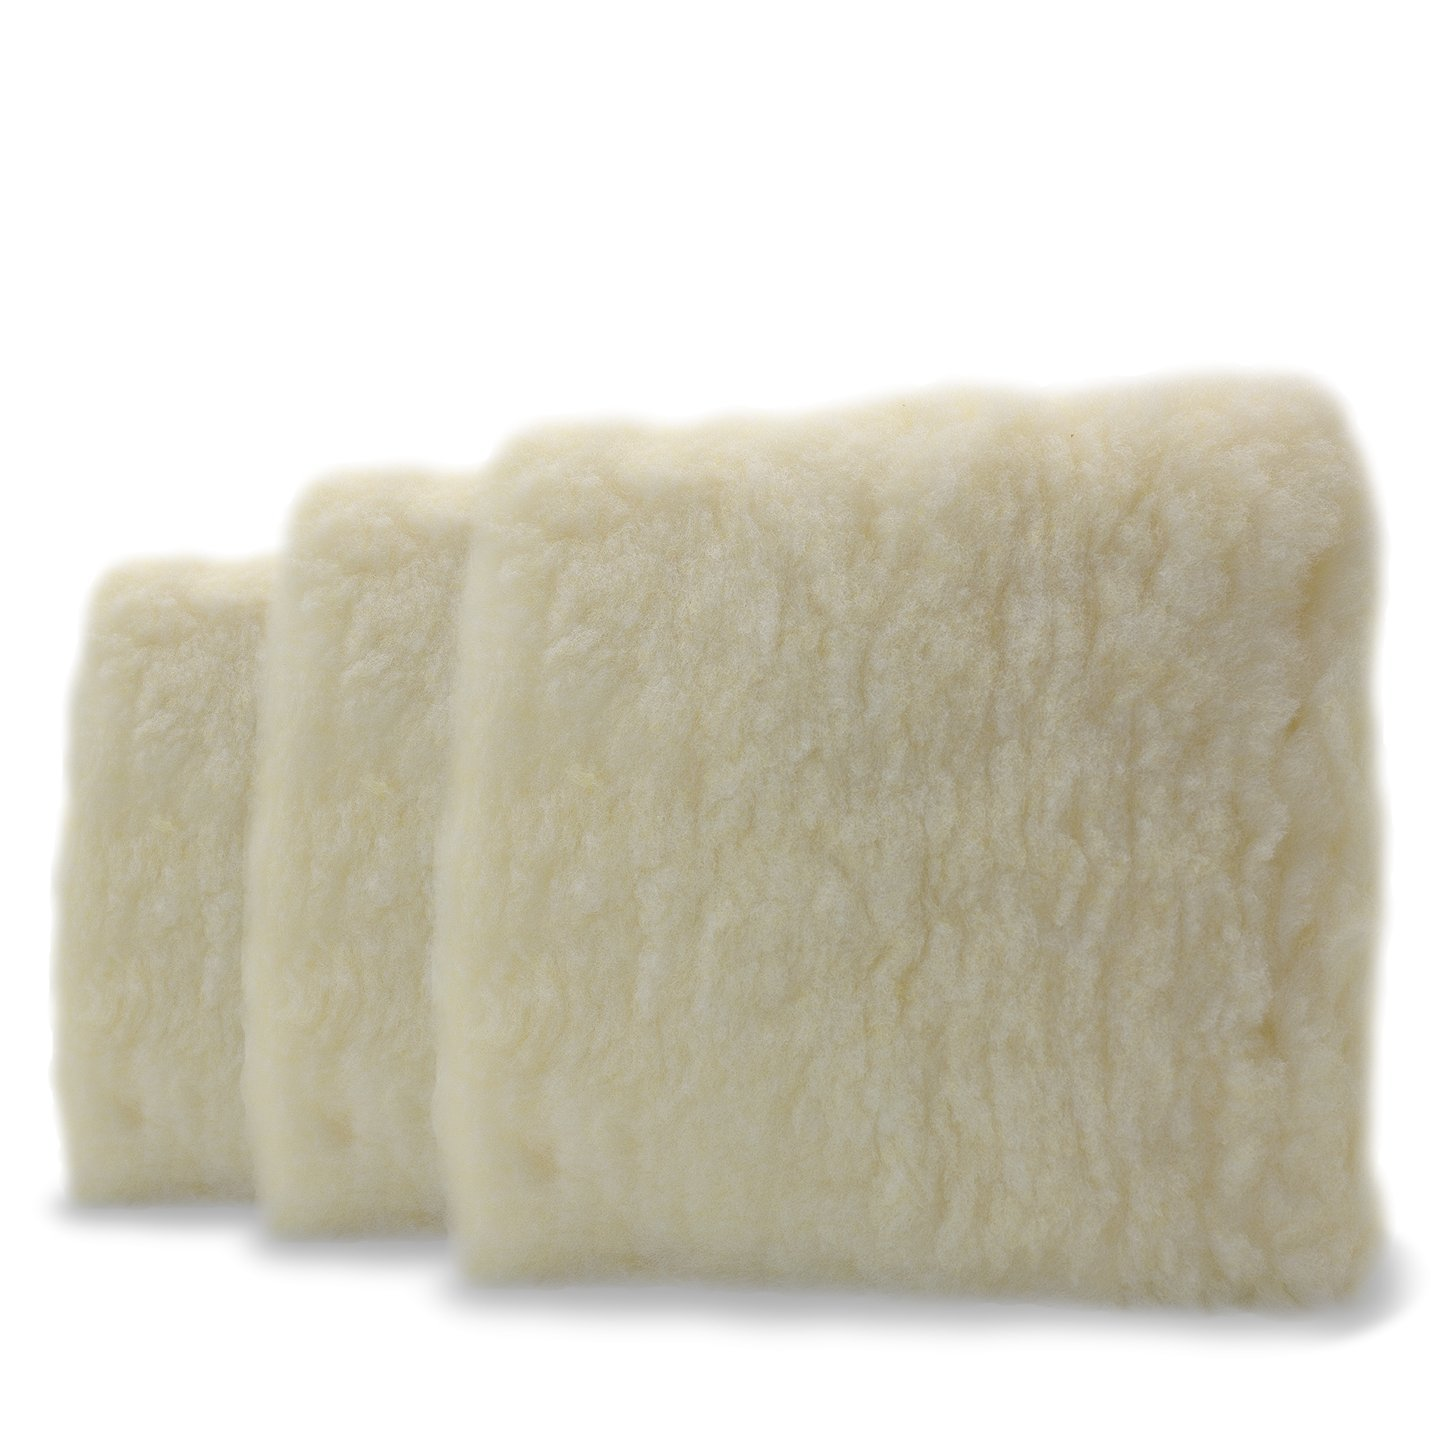 Adam's Professional 10' Car Wash Pad - Made of Professional Grade Plush Synthetic Wool - Safely Wash Your Vehicle Without Introducing New Scratches or Swirls - Swirl Free Washing Guaranteed Adam' s Polishes 4332944919